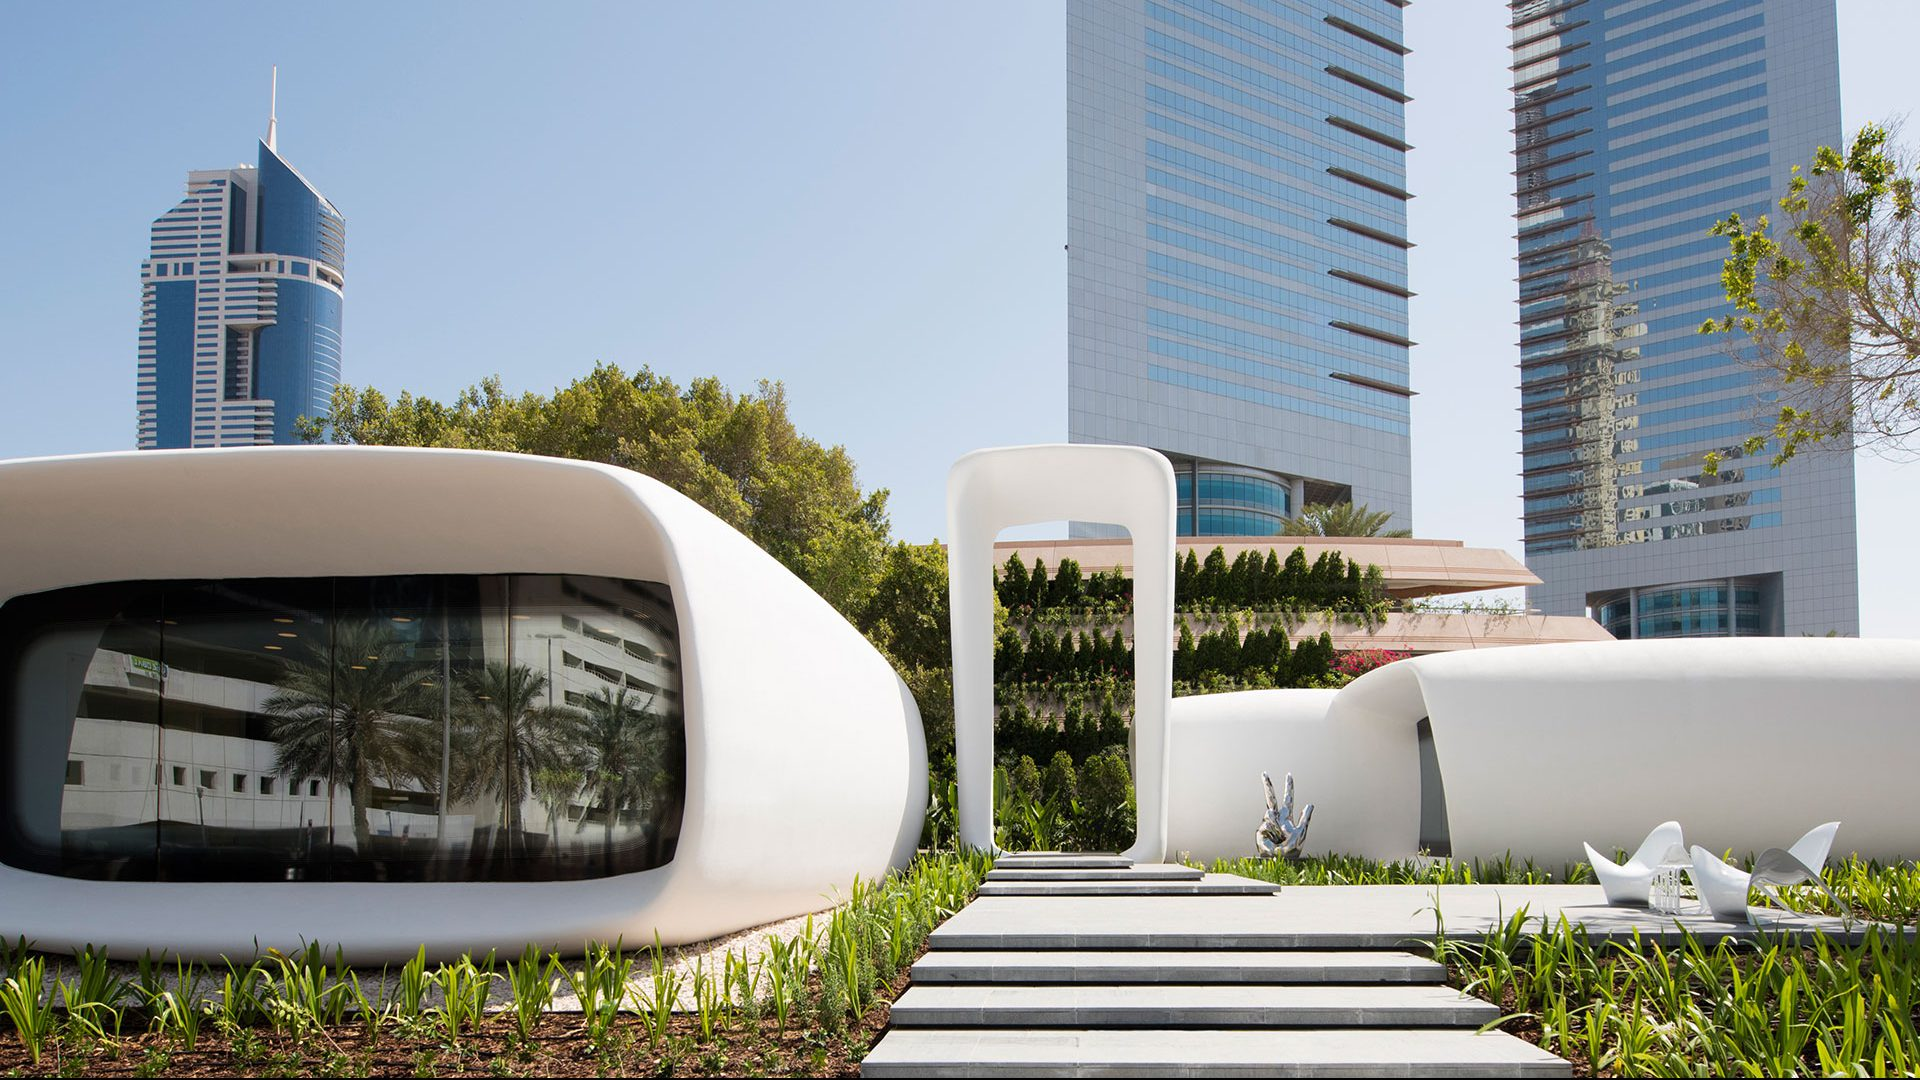 Check out these 3D Printed houses that everyone's talking about!